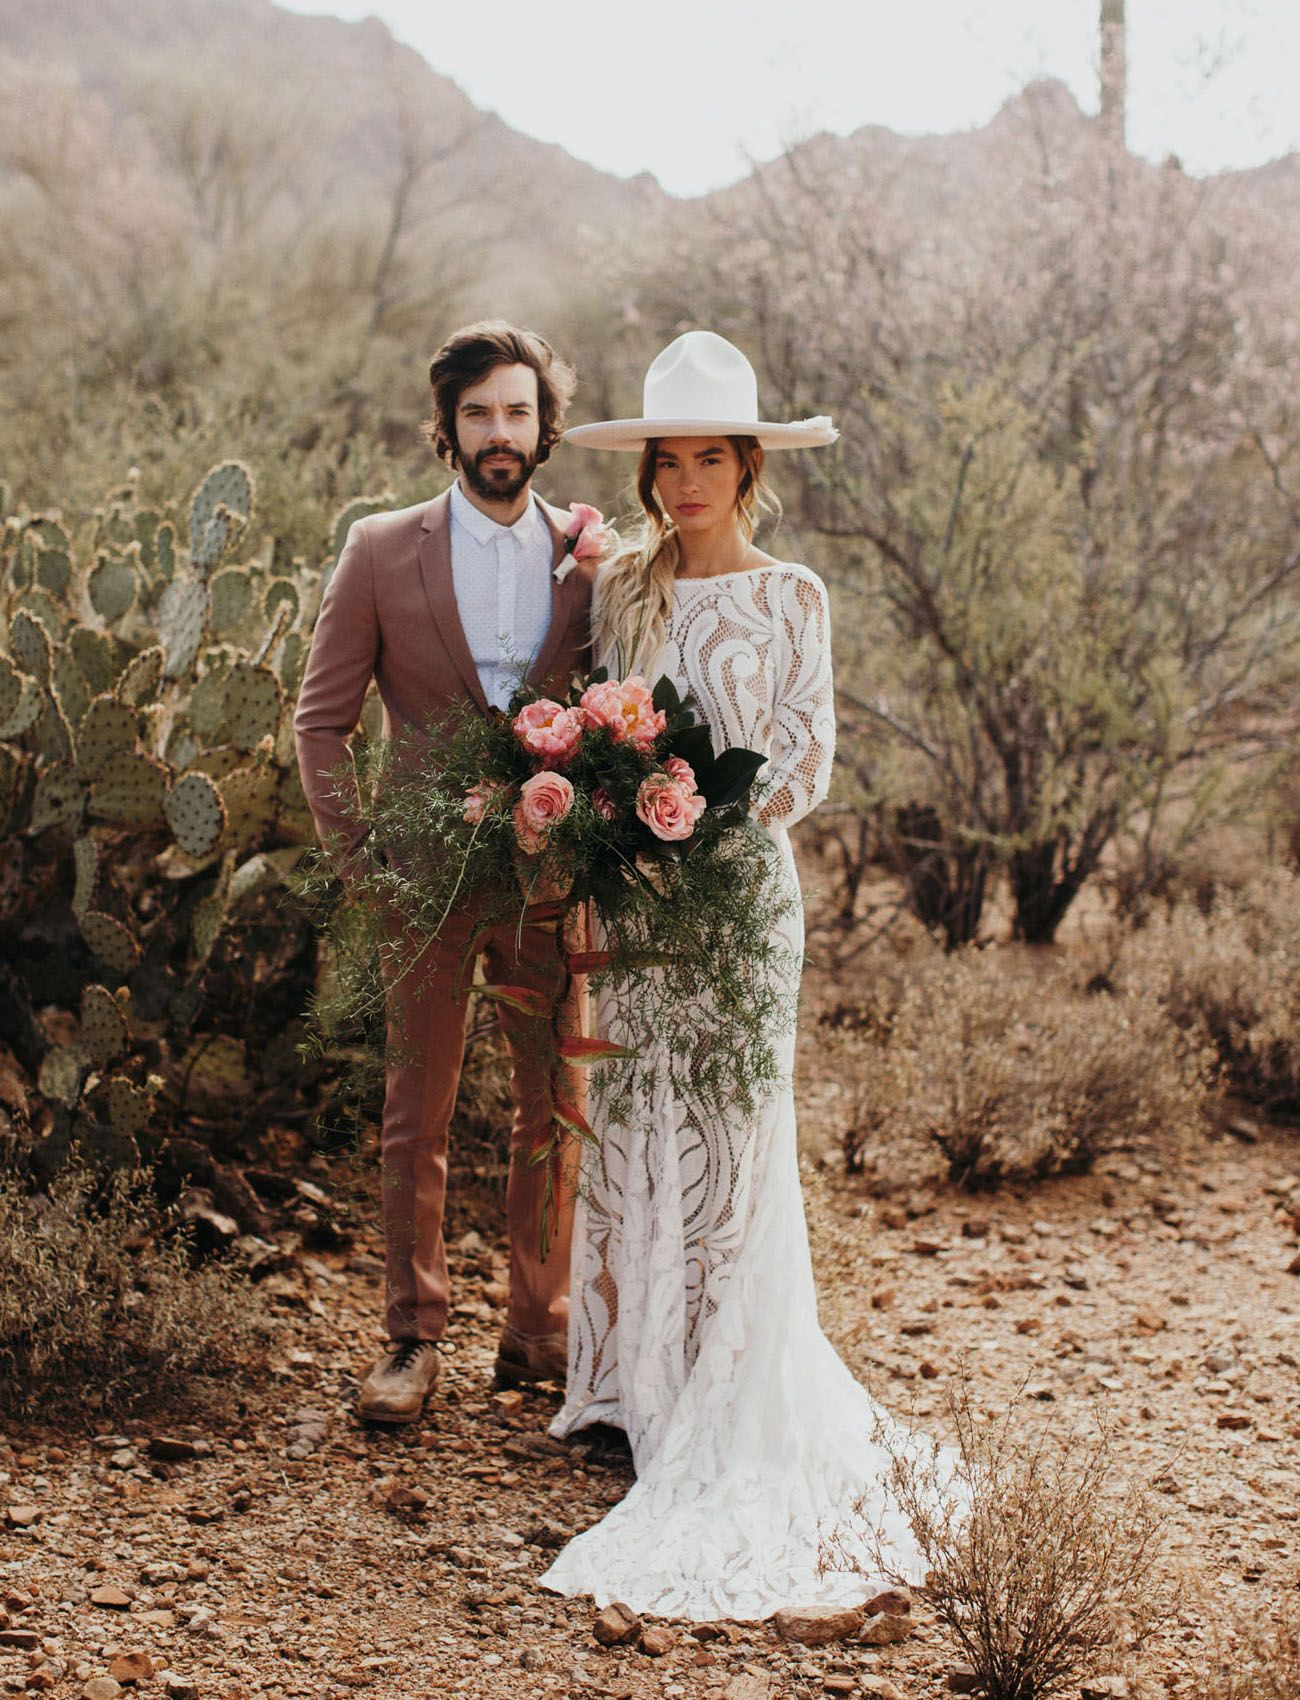 Bridal Trend With Hats Boho Hipster Bride Casey Quigley Stylish Groom In Tan Brown Suit